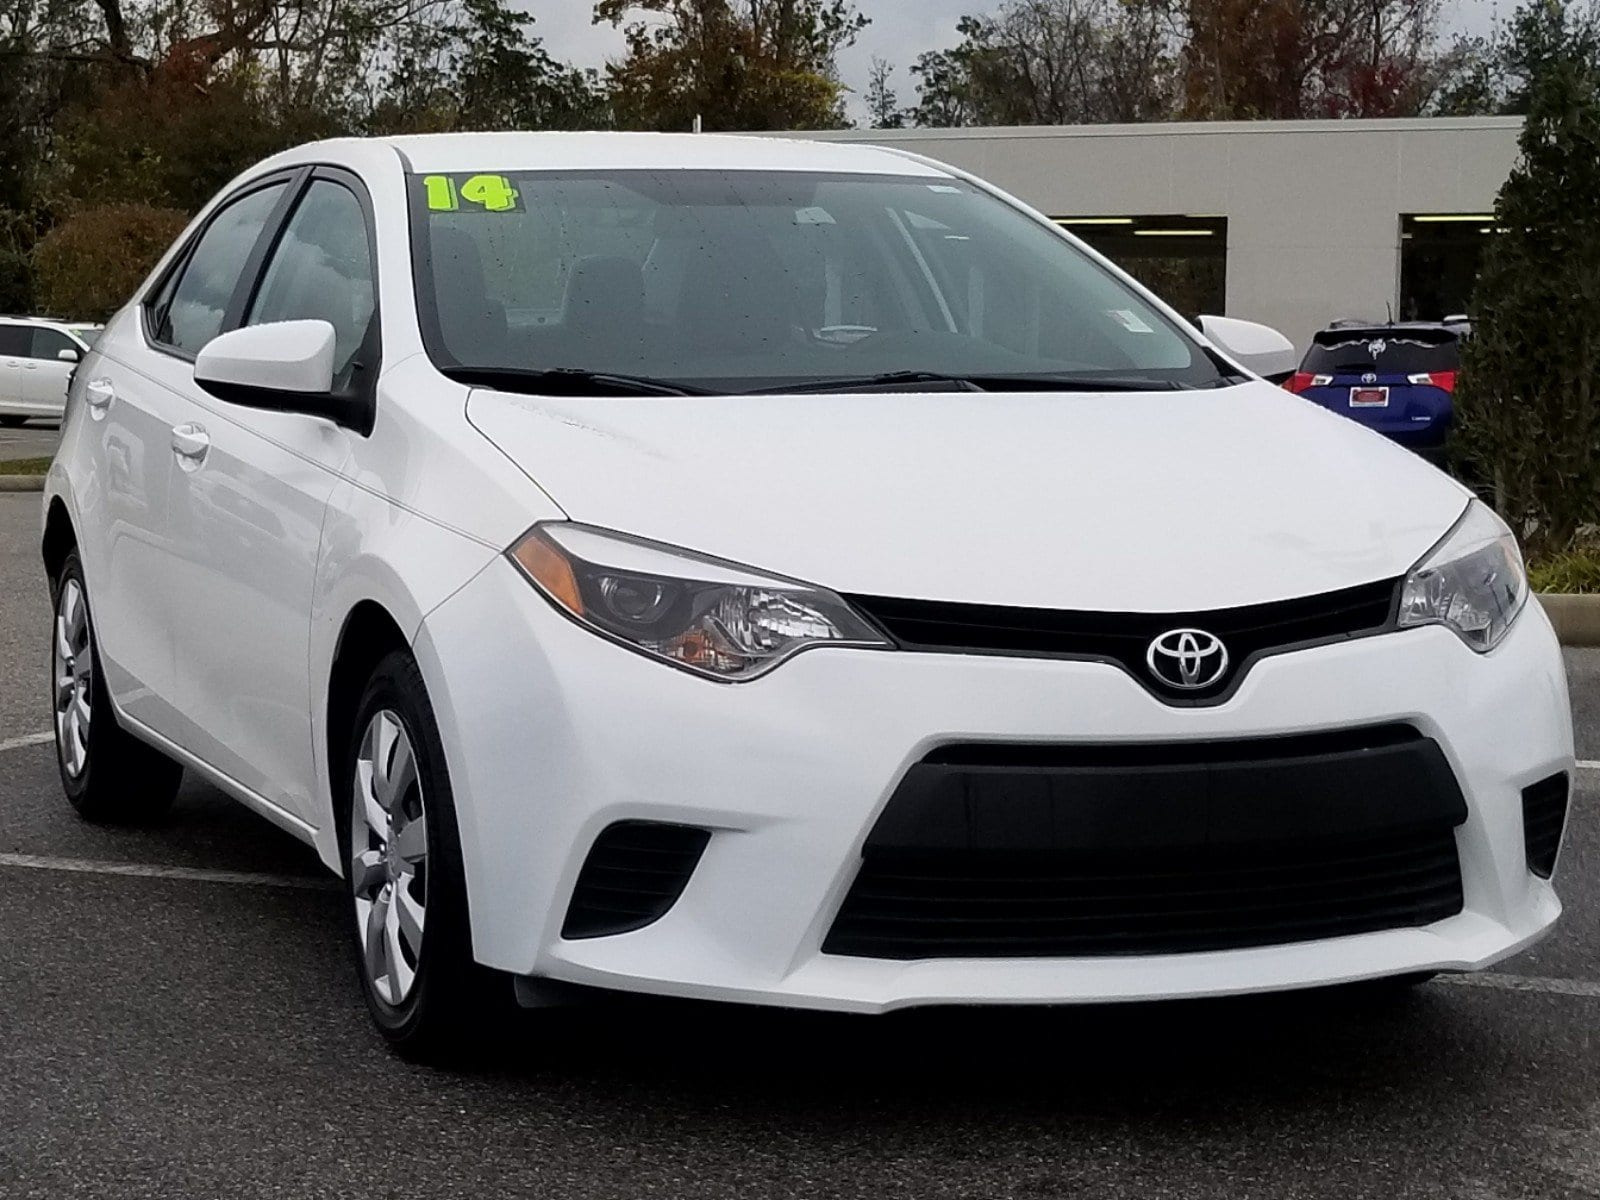 toyota used cars for sale near me awesome toyota corolla used cars for sale near me of toyota used cars for sale near me